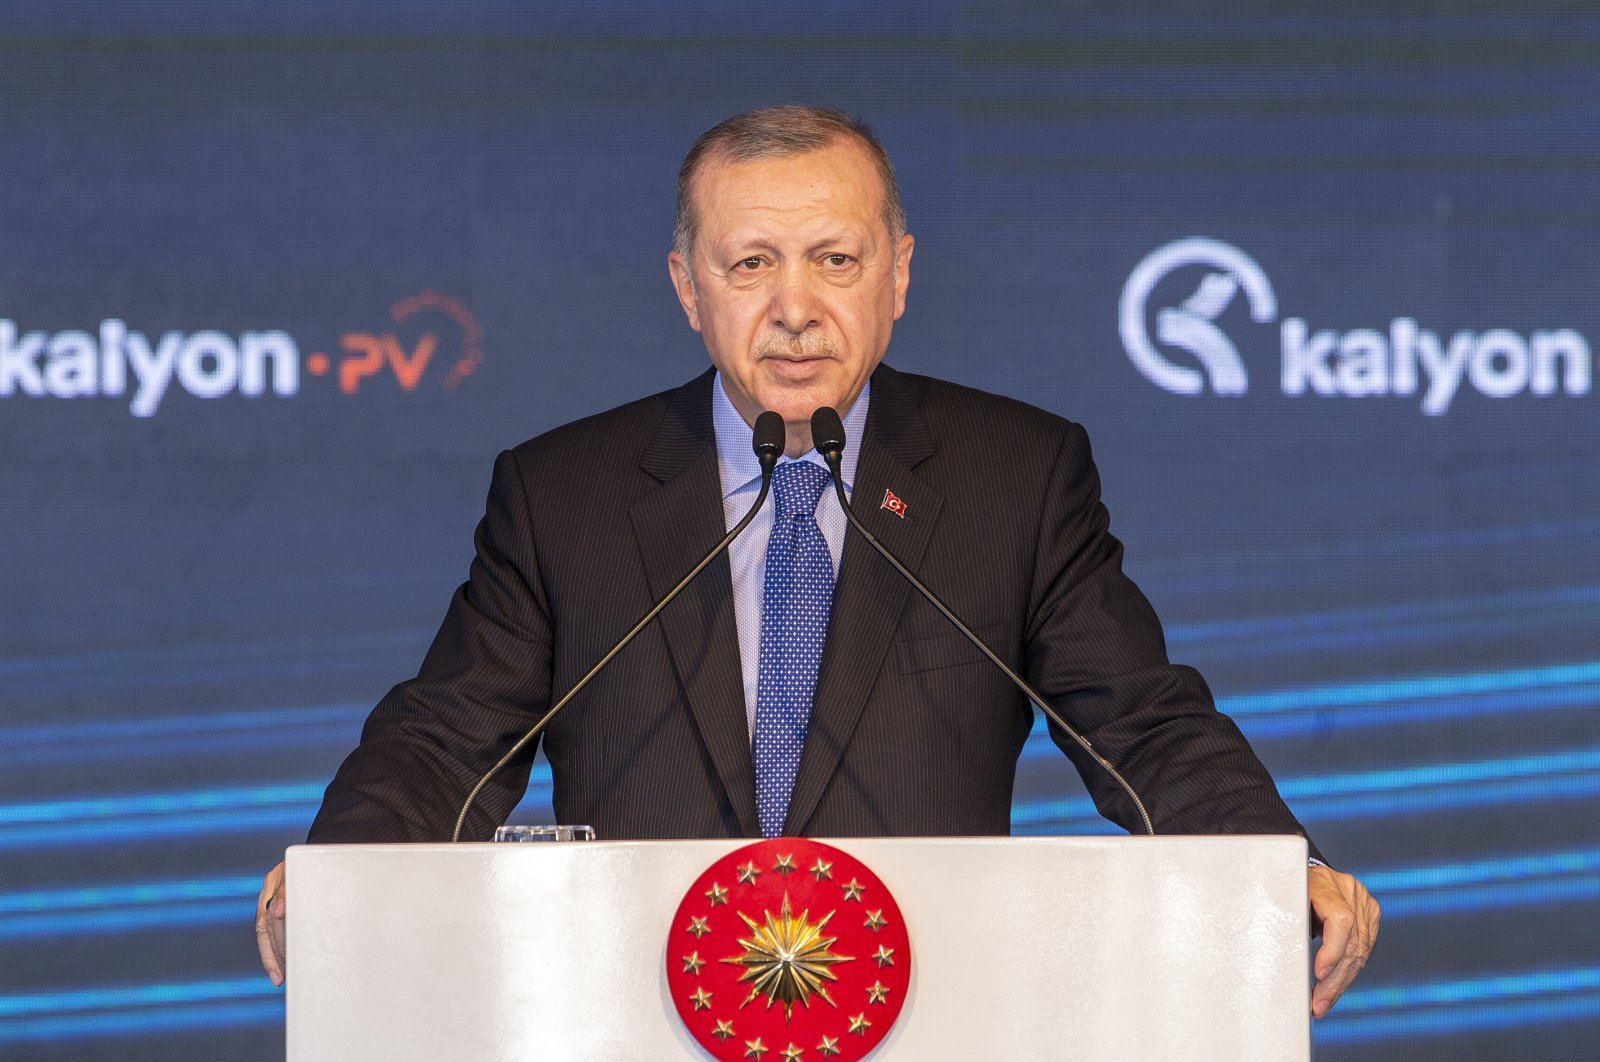 President Recep Tayyip Erdoğan speaks during an opening ceremony of Turkey's first integrated solar panel manufacturing facility, Ankara, Turkey, Aug. 19, 2020. (AA Photo)